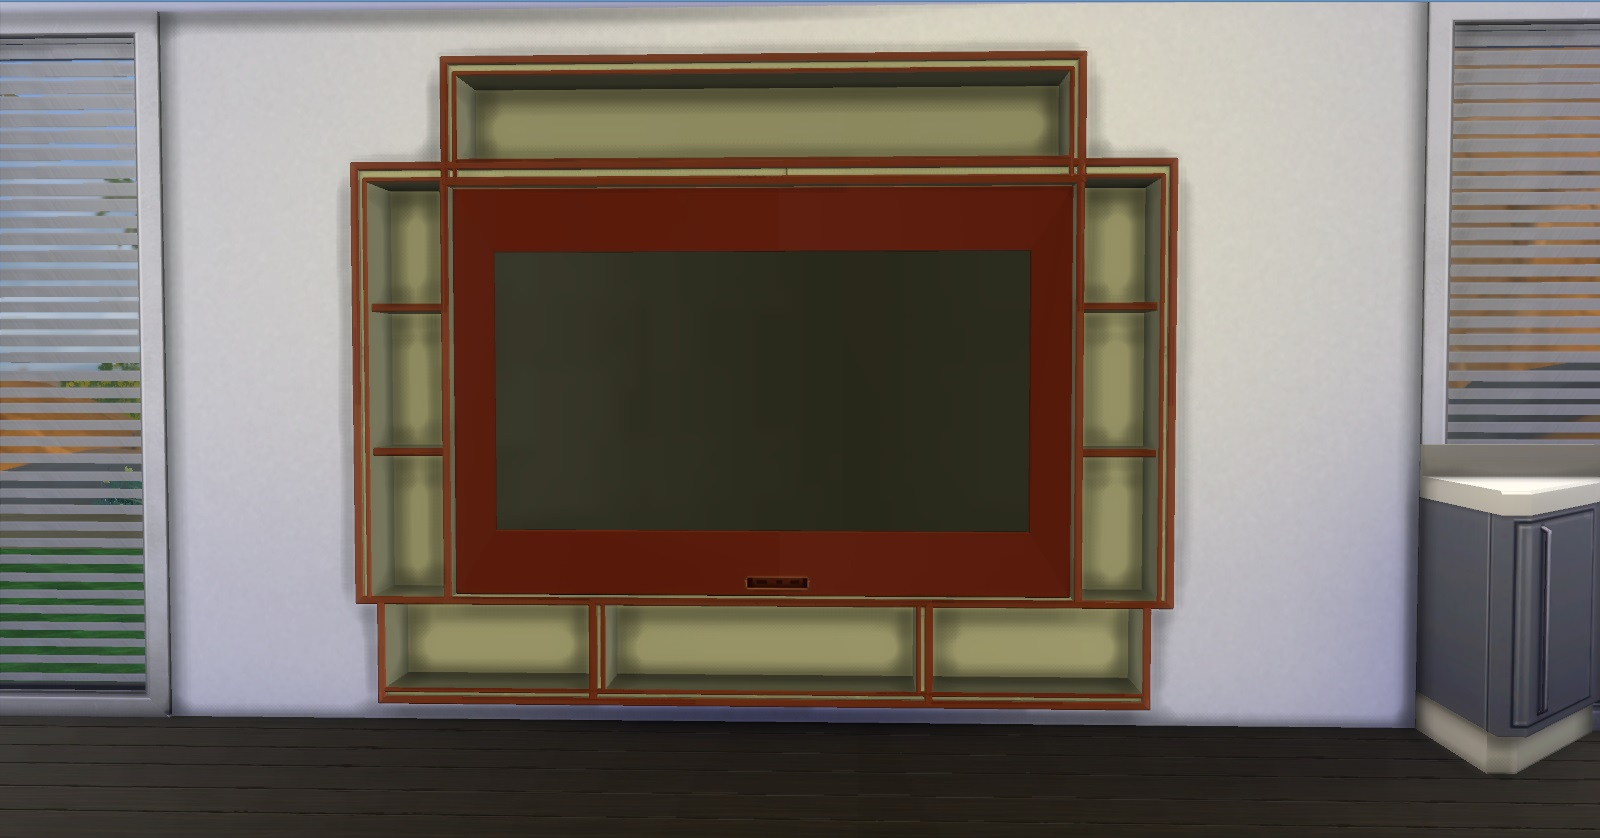 Simple Wall Tv by AdonisPluto